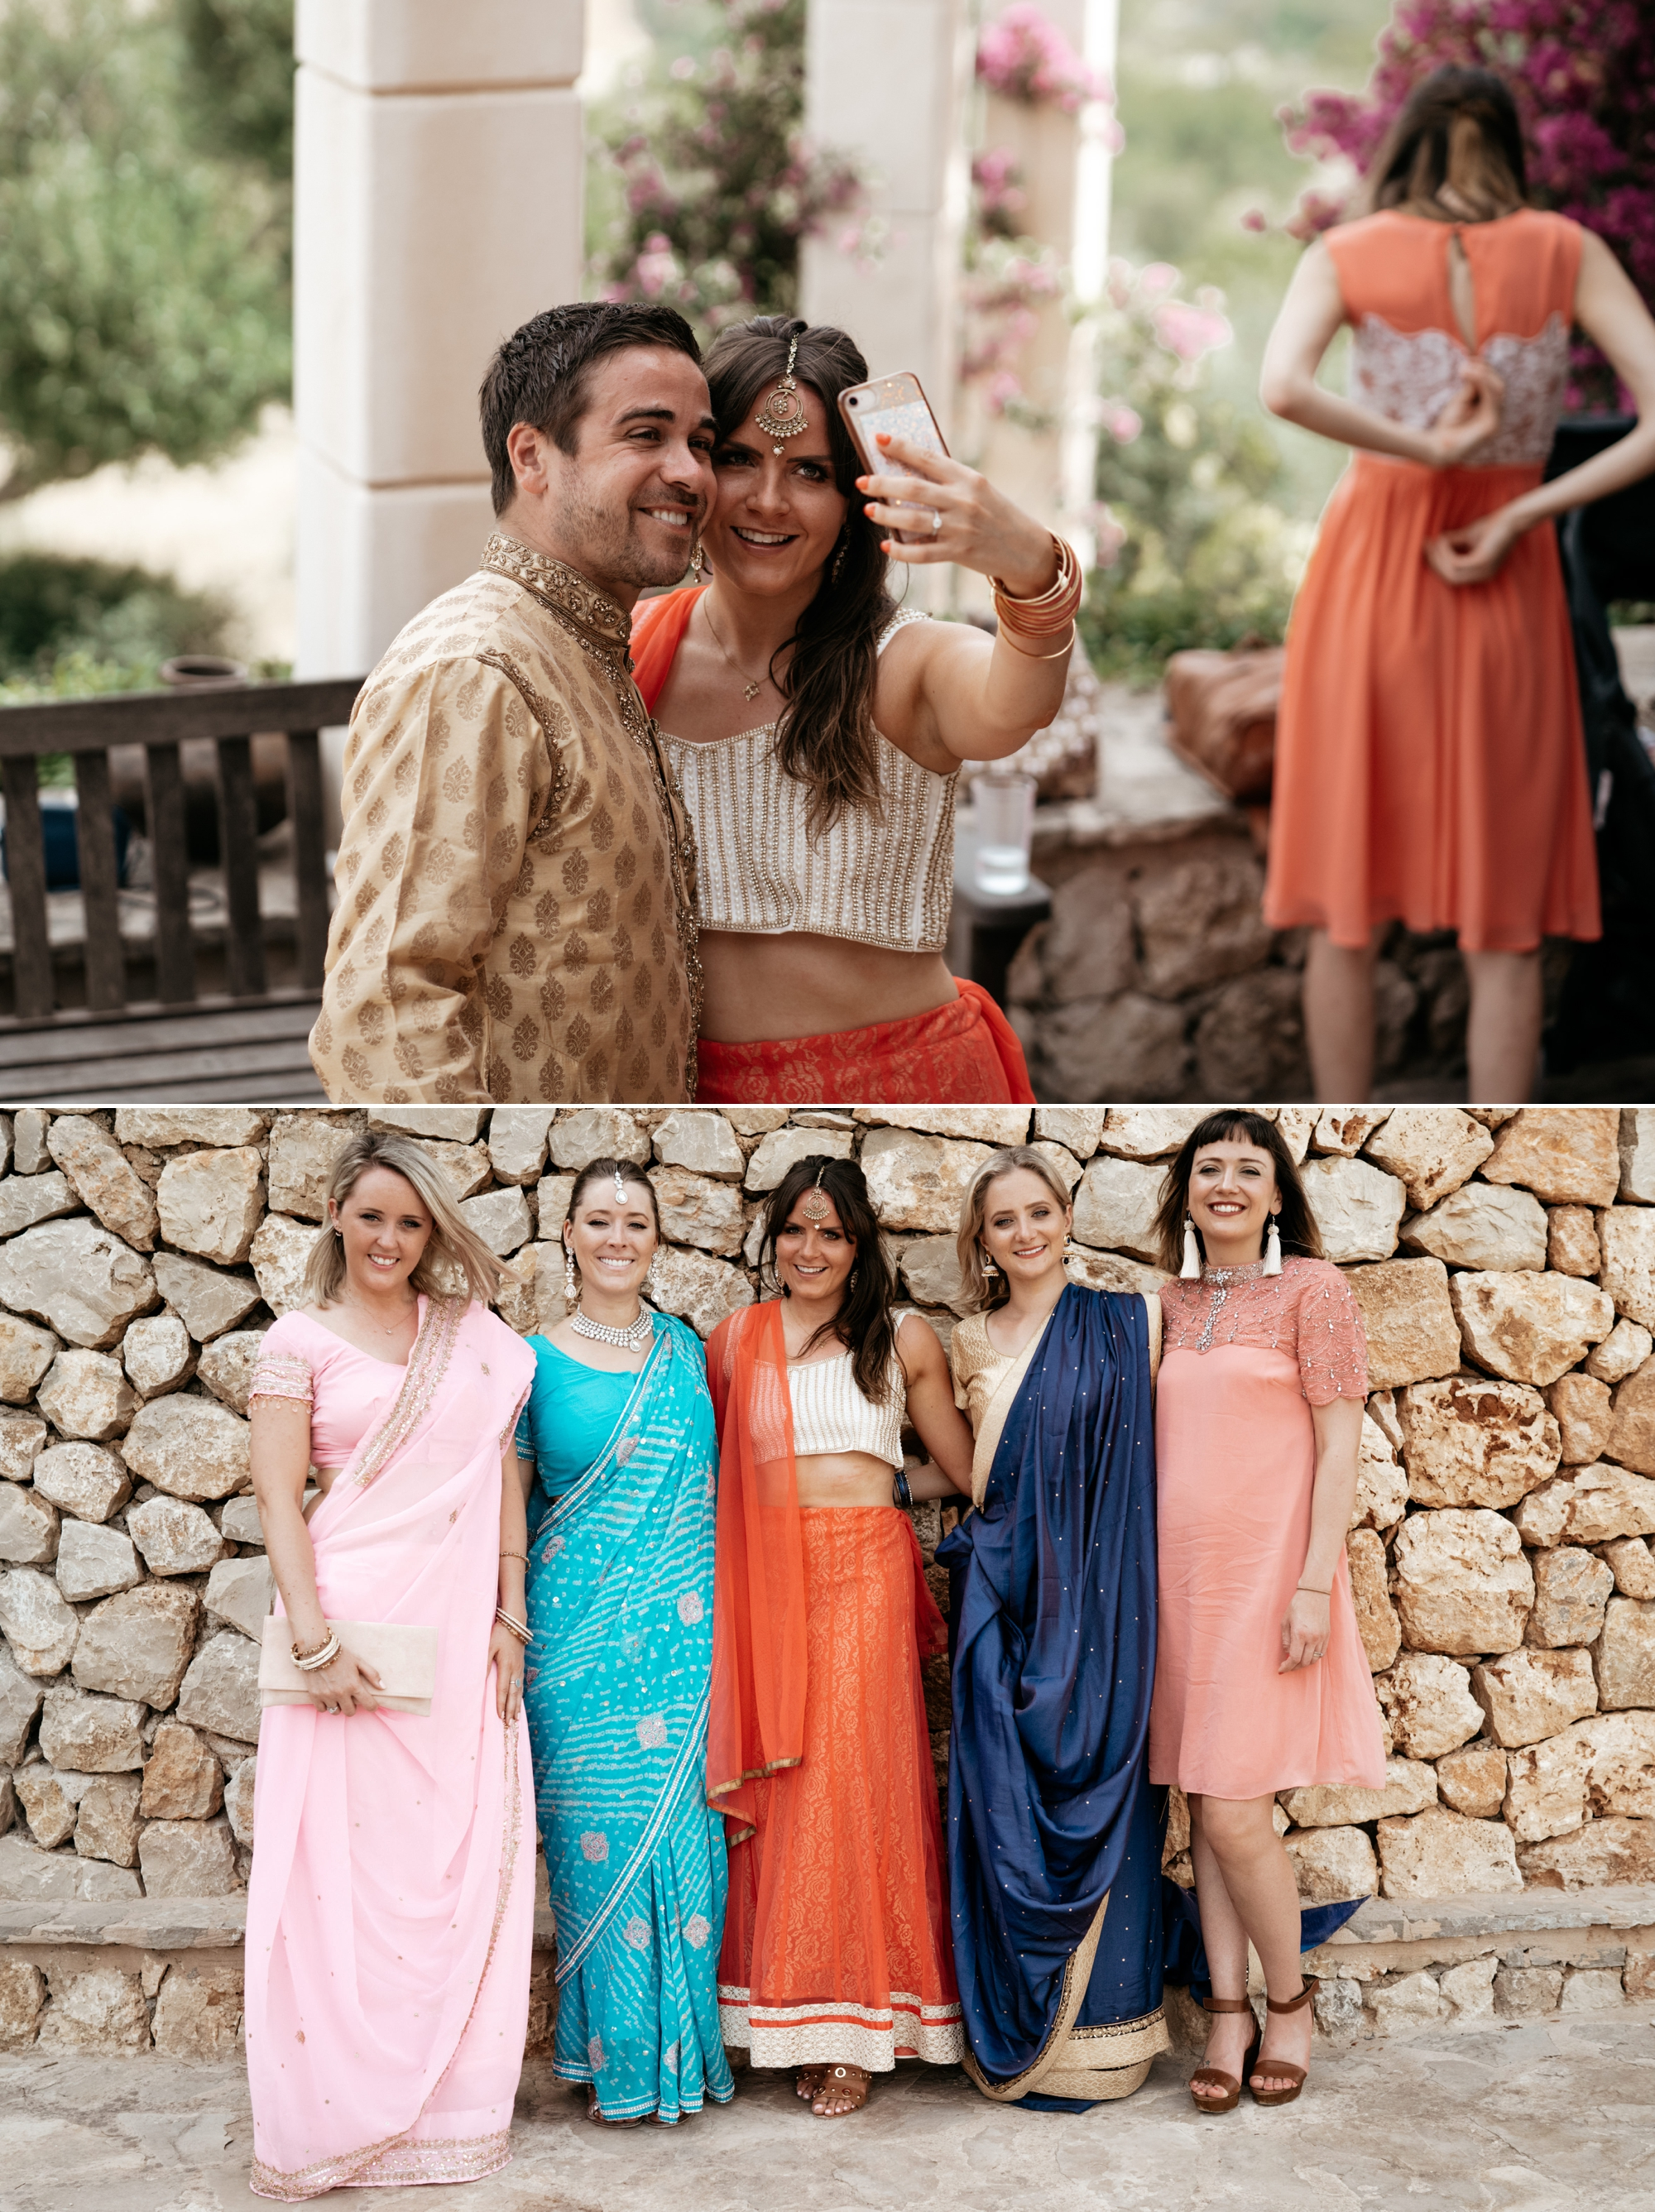 natural wedding photography mallorca boda hindu 0044 1